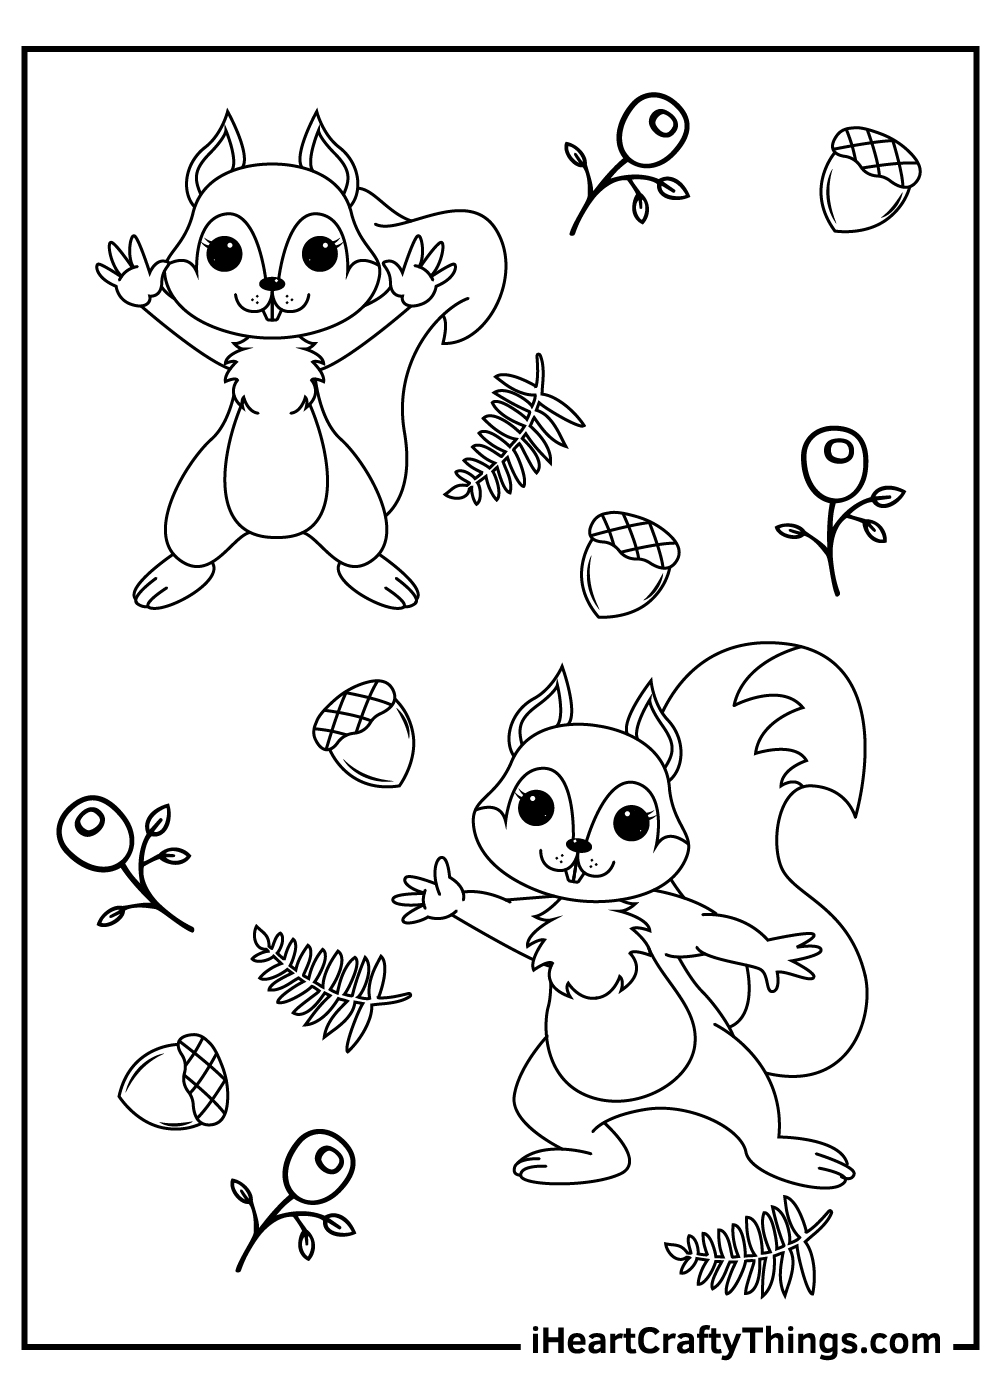 Chip 'n' Dale Disney squirrels coloring pages